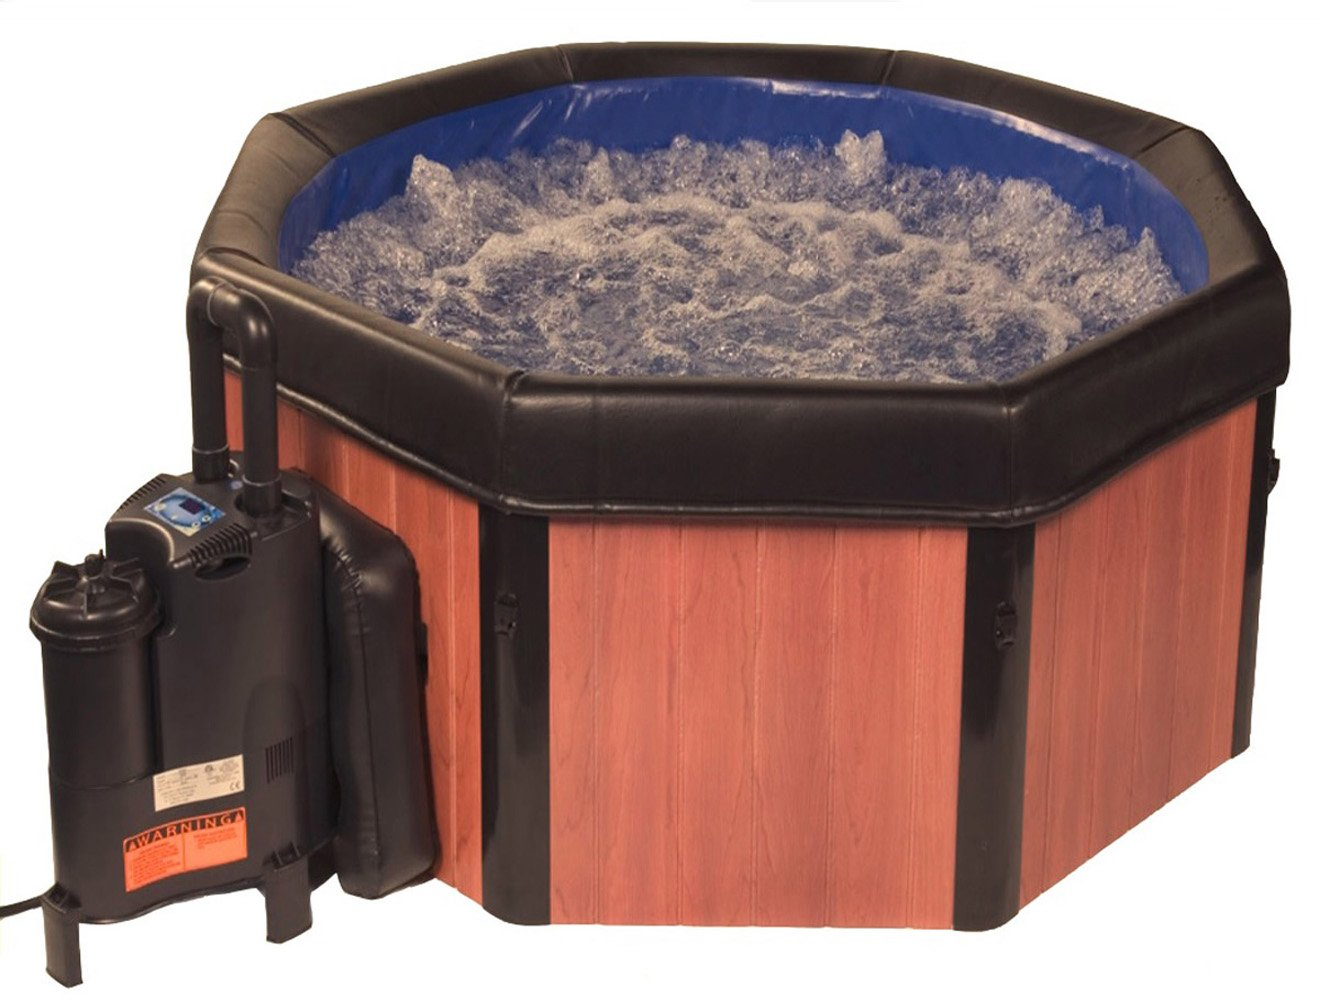 Comfort Line Products Spa N a Box